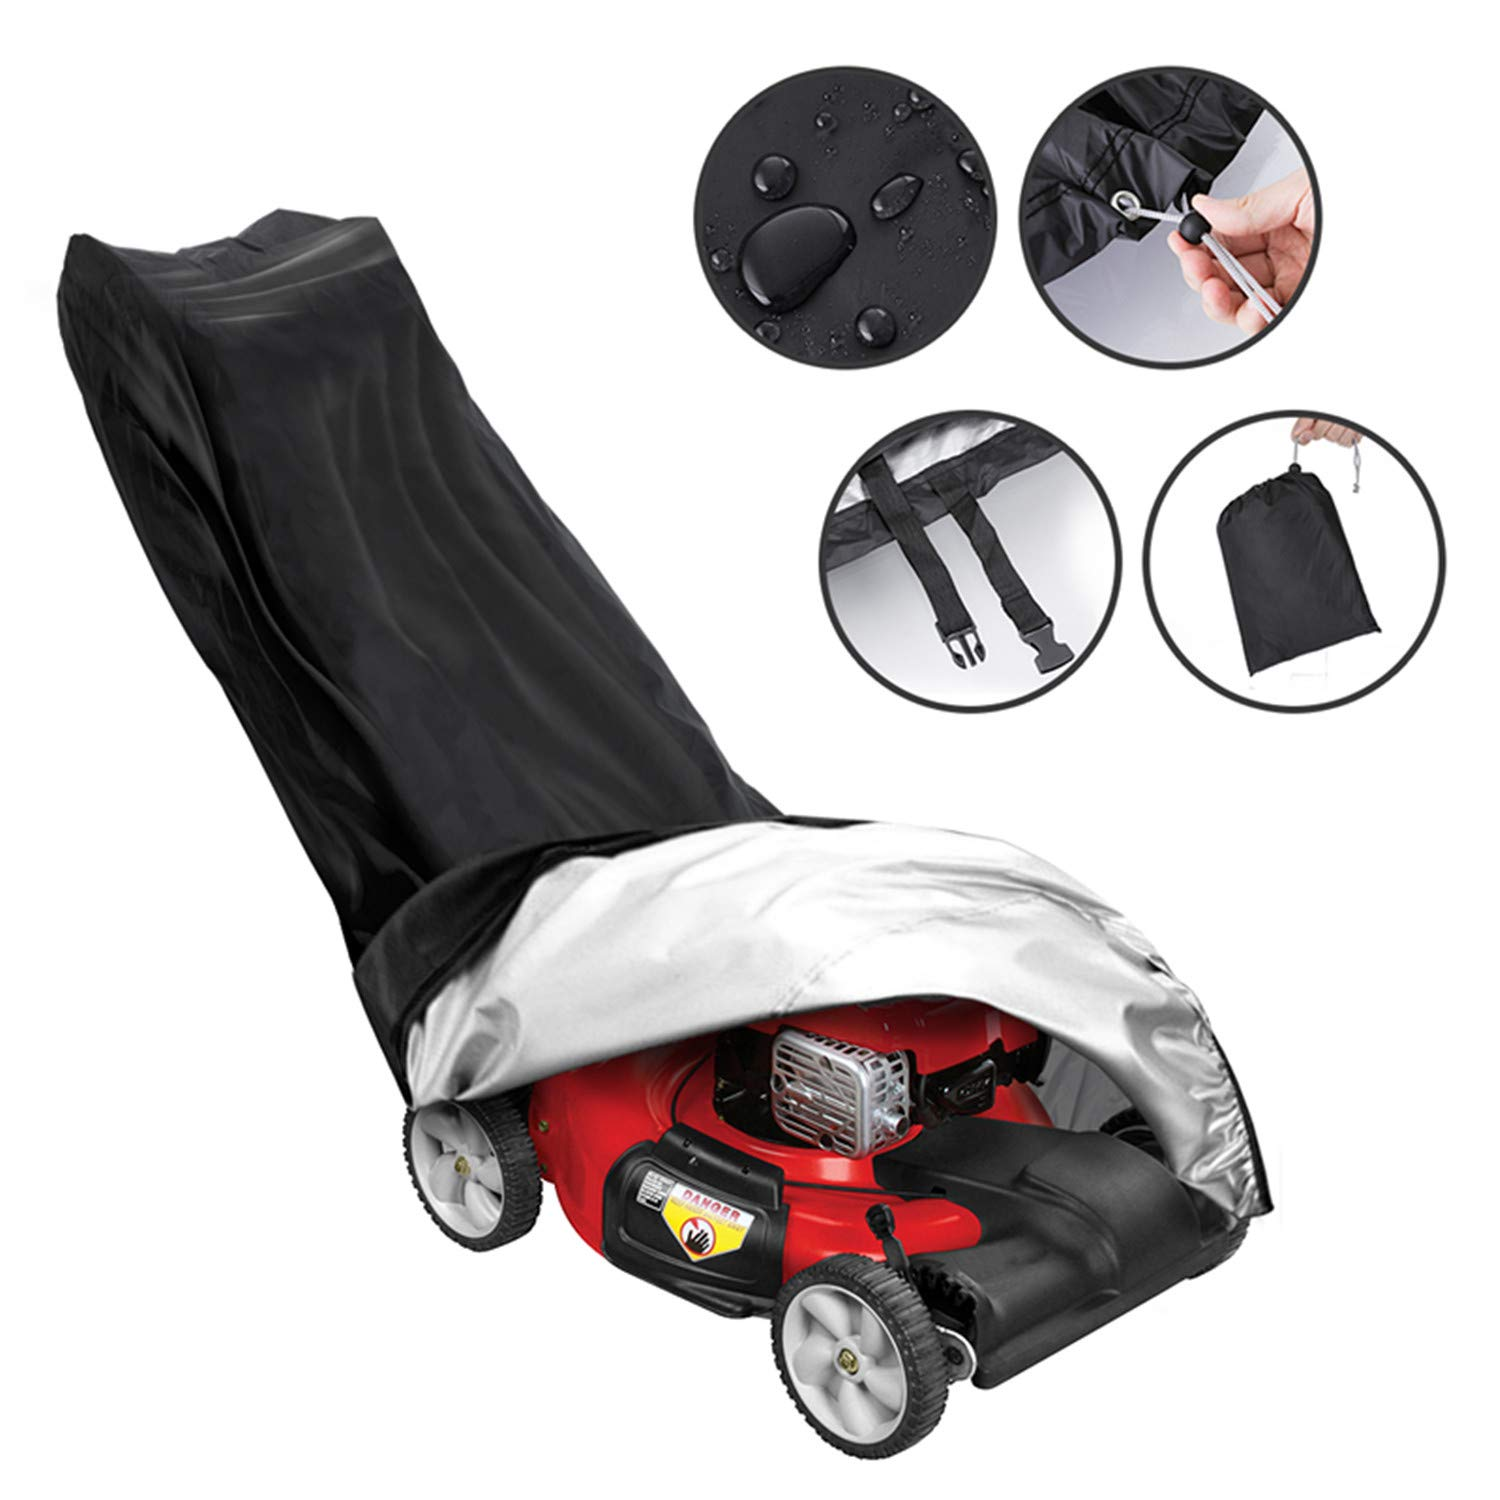 Tvird Lawn Mower Cover-Premium Oxford Heavy Duty Push Mower Cover,Anti UV&Mildew&Dust&Water Universal Fit Size with Drawstring,Storage Bag and Buckle(Black) by Tvird